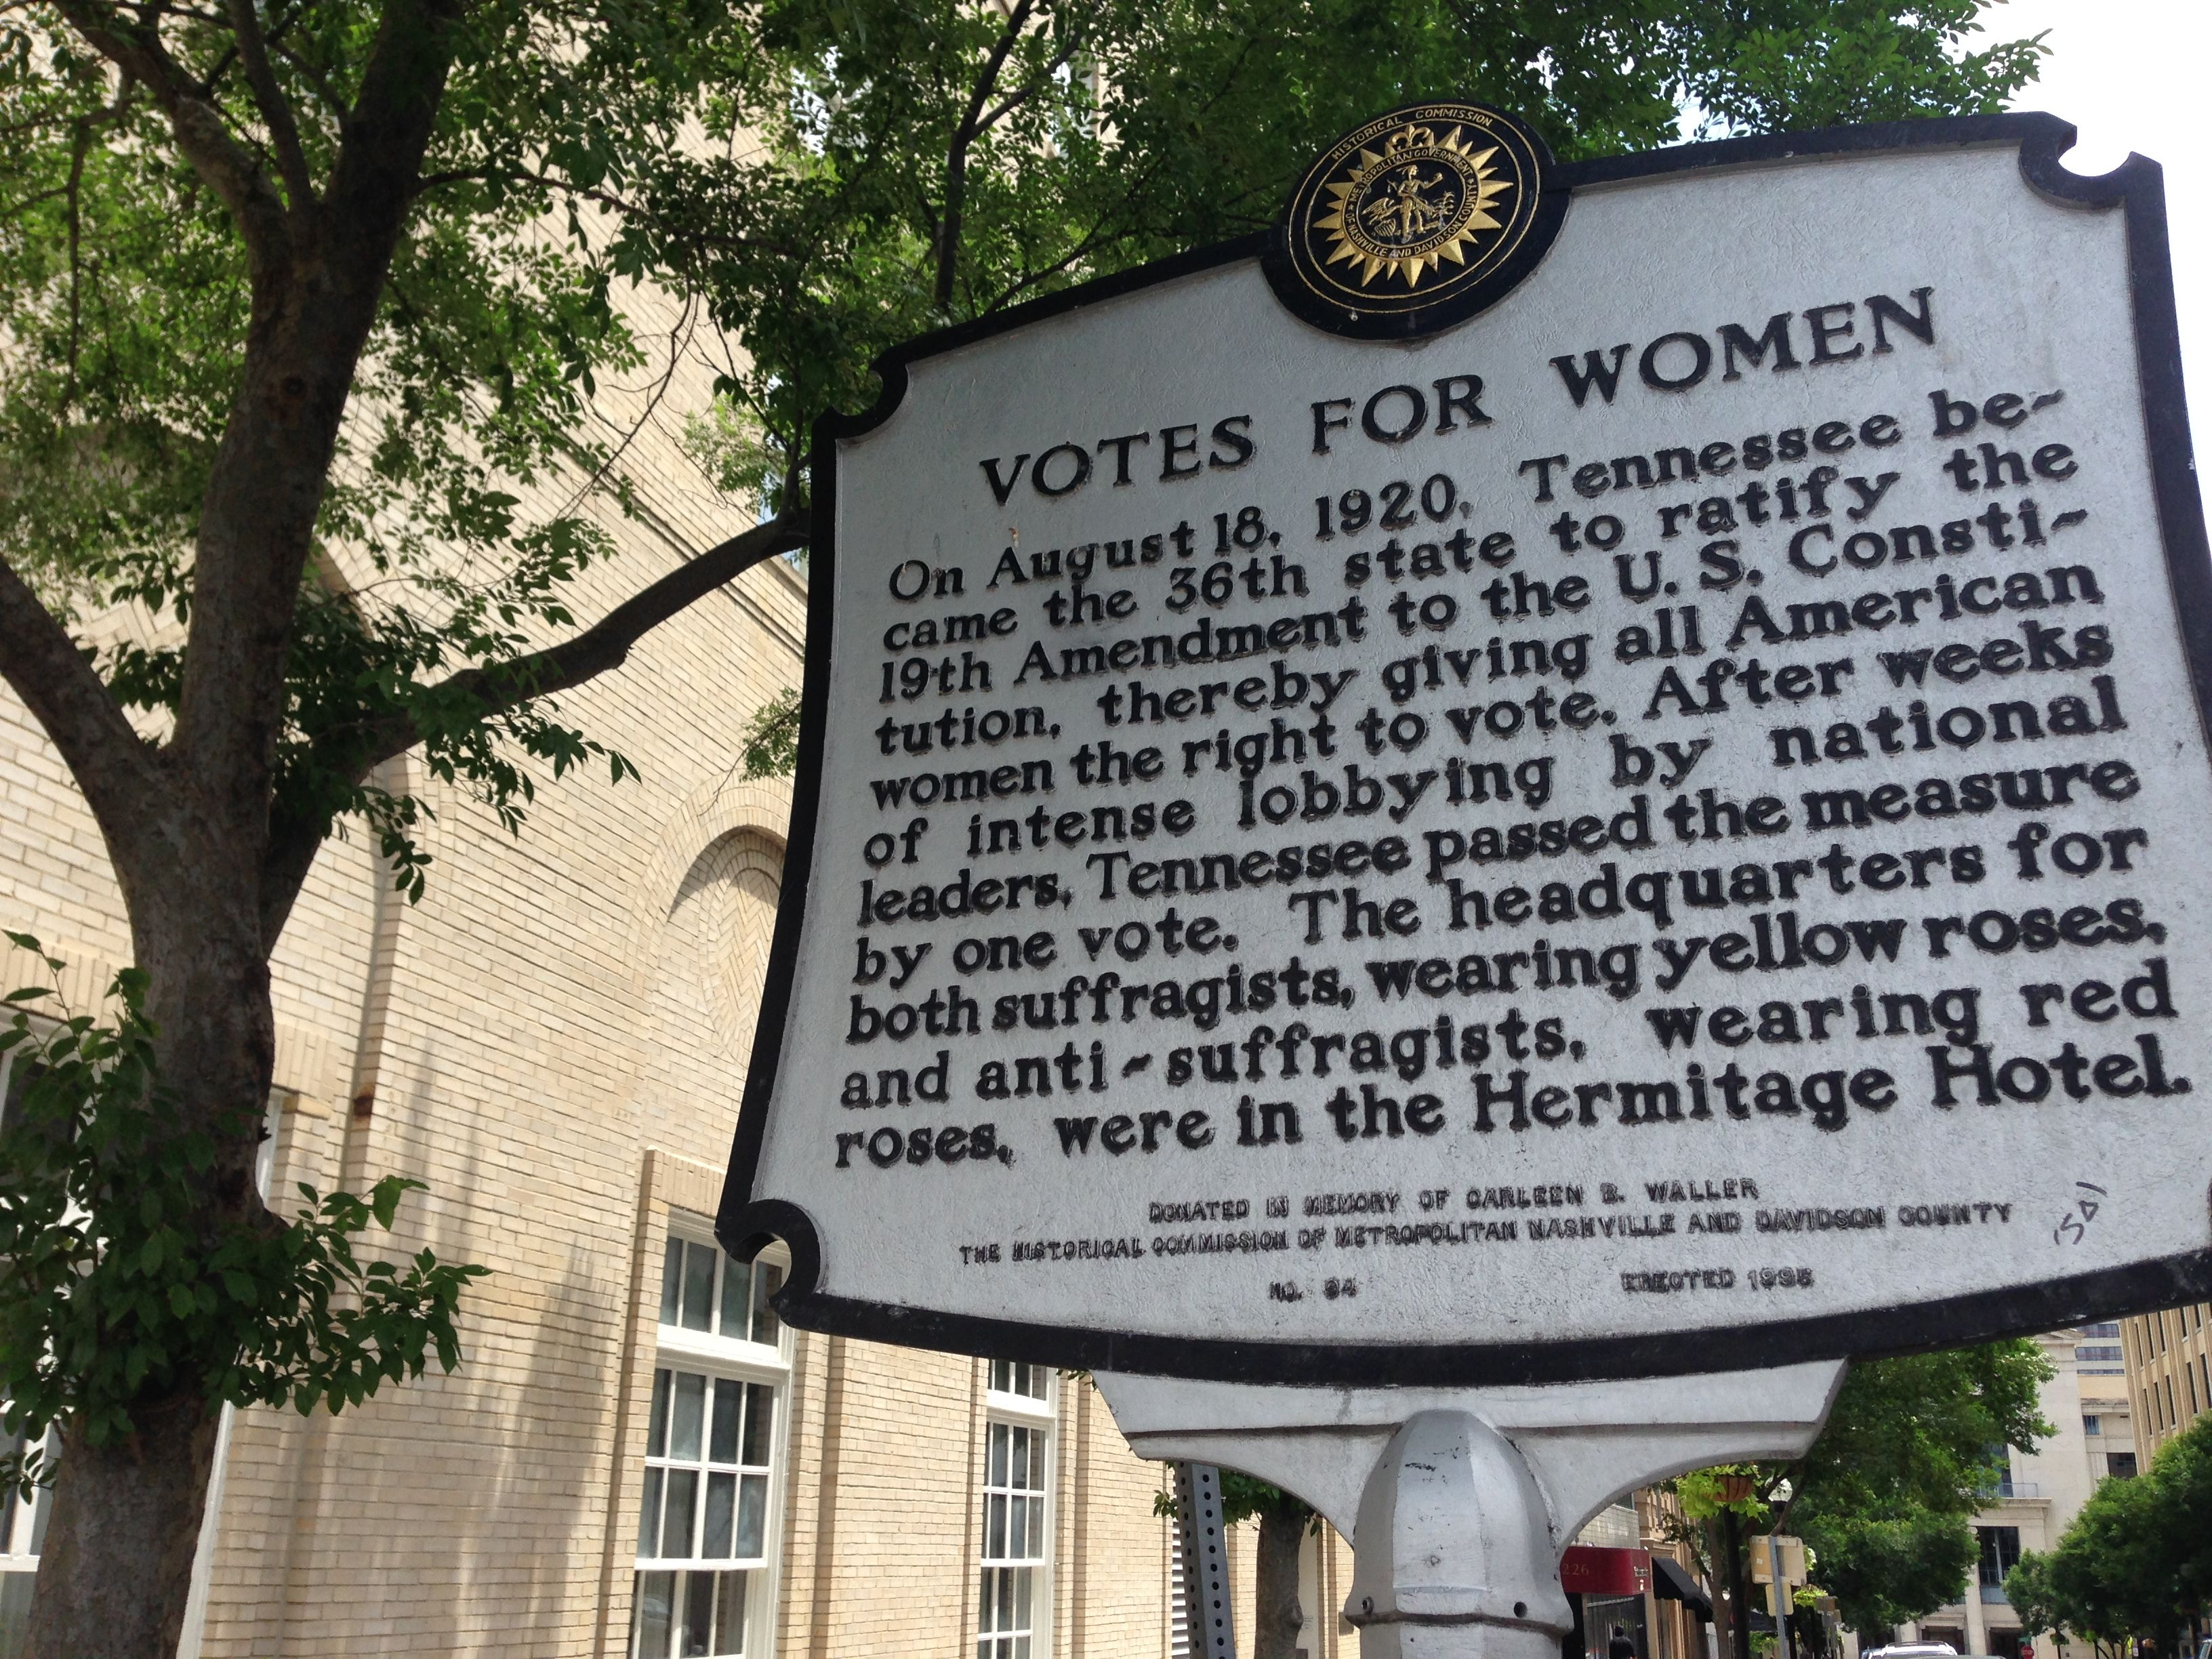 women and the right to vote in the 19th amendment Bonnie raitt - women be wise - live at jazzfest new orleans 2009 - duration: 4:07 bonnie's pride and joy 5,122 views.